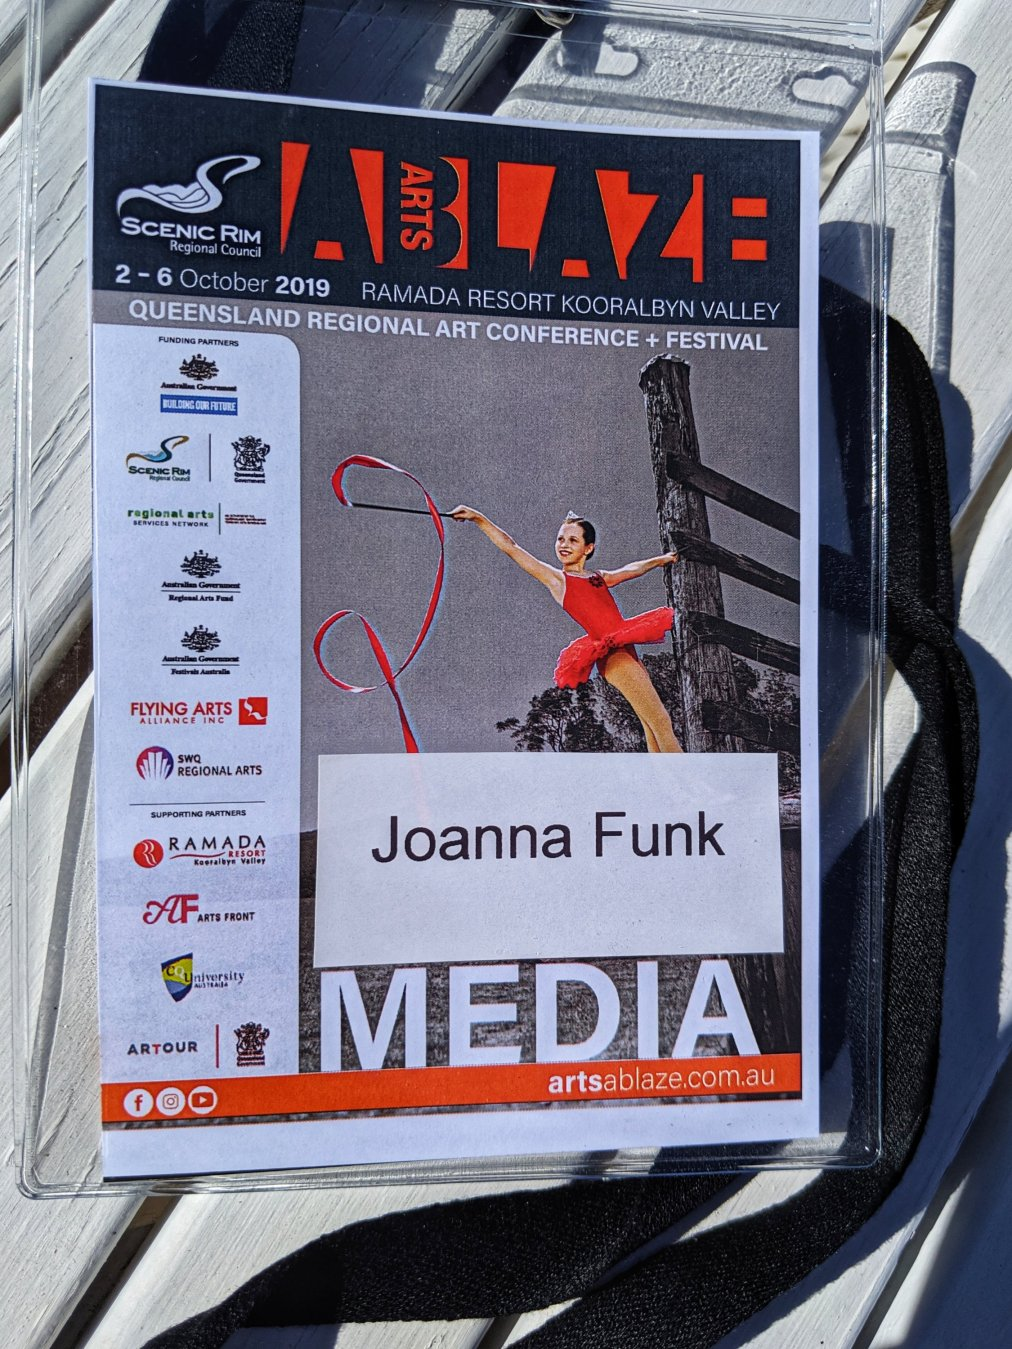 Got my Arts Ablaze media pass 👍